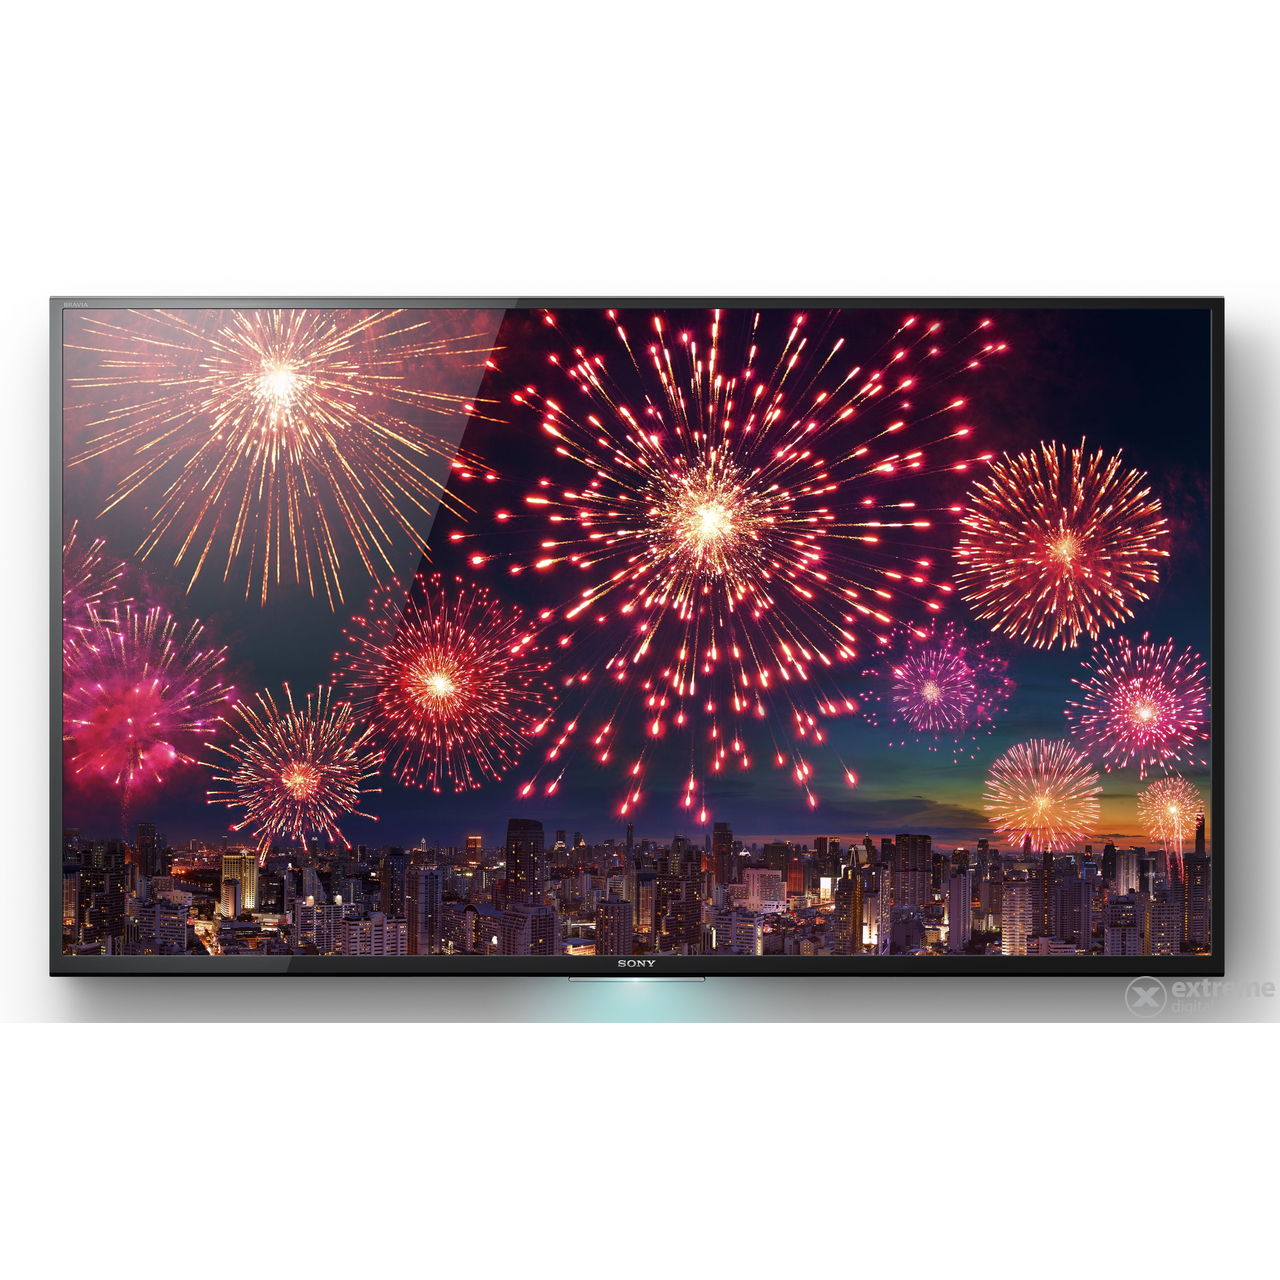 sony-kd55x8005cbaep-uhd-android-smart-led-televizio_ed5fca1c.jpg